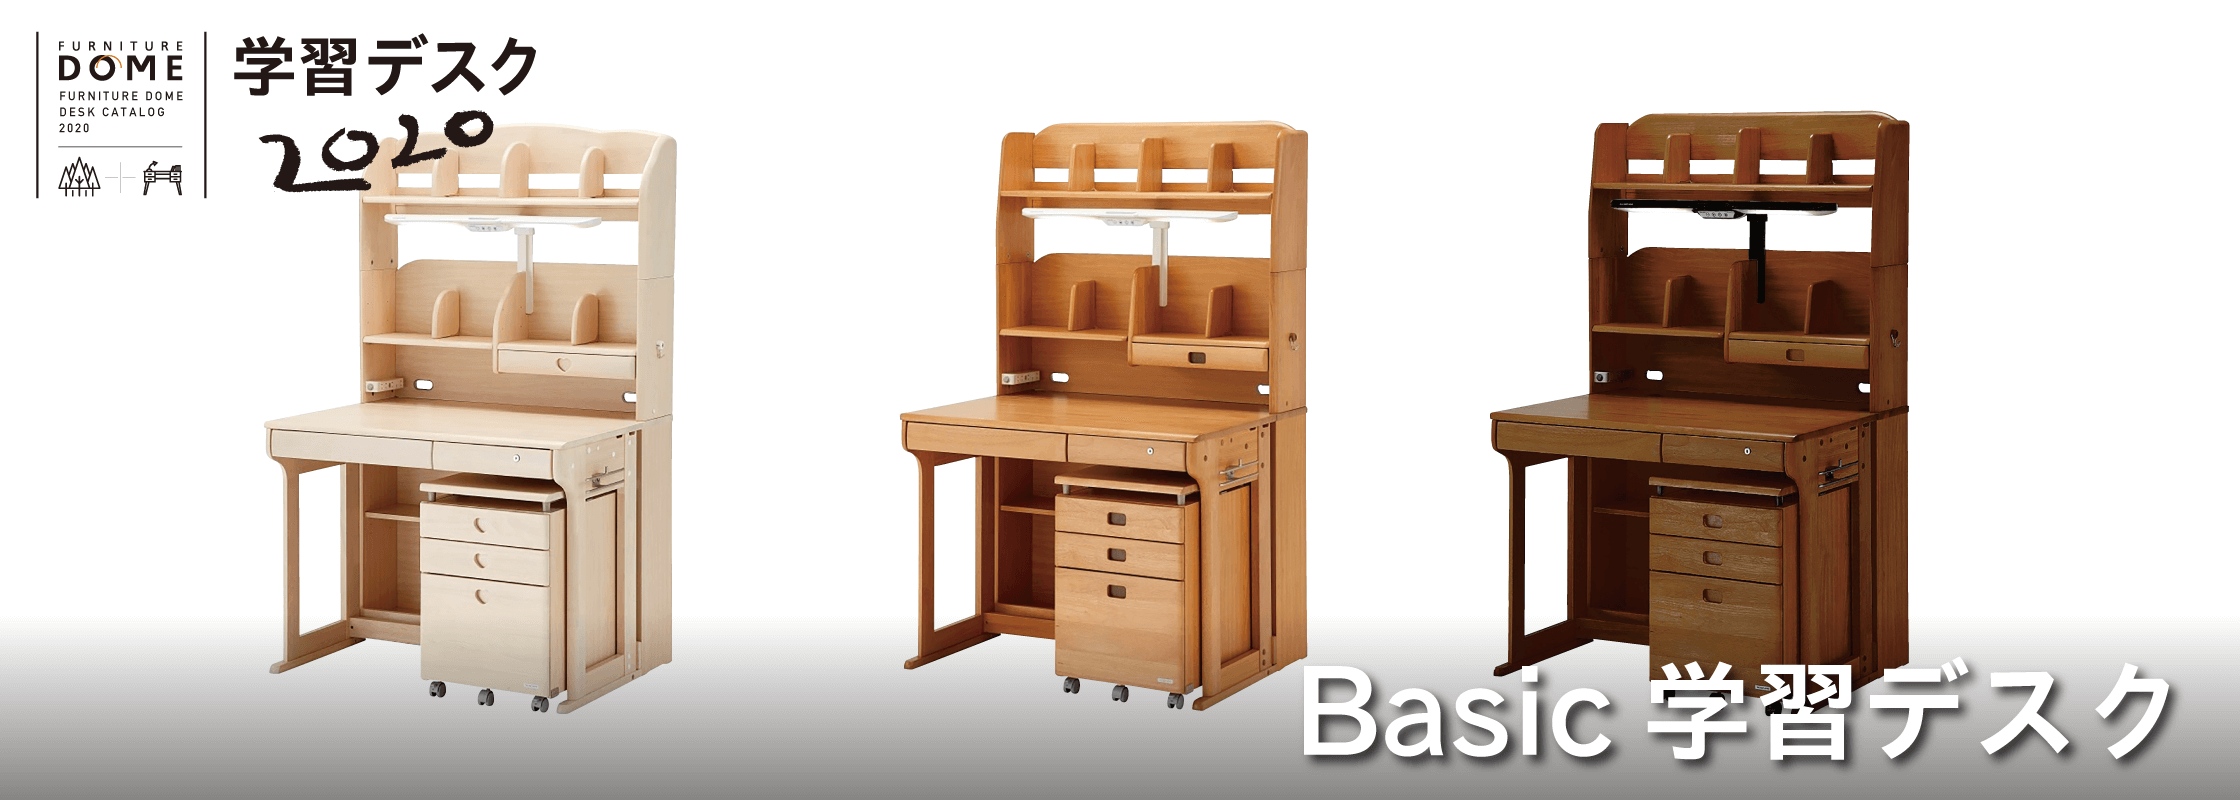 2020_Basic_desk_bn_big_02